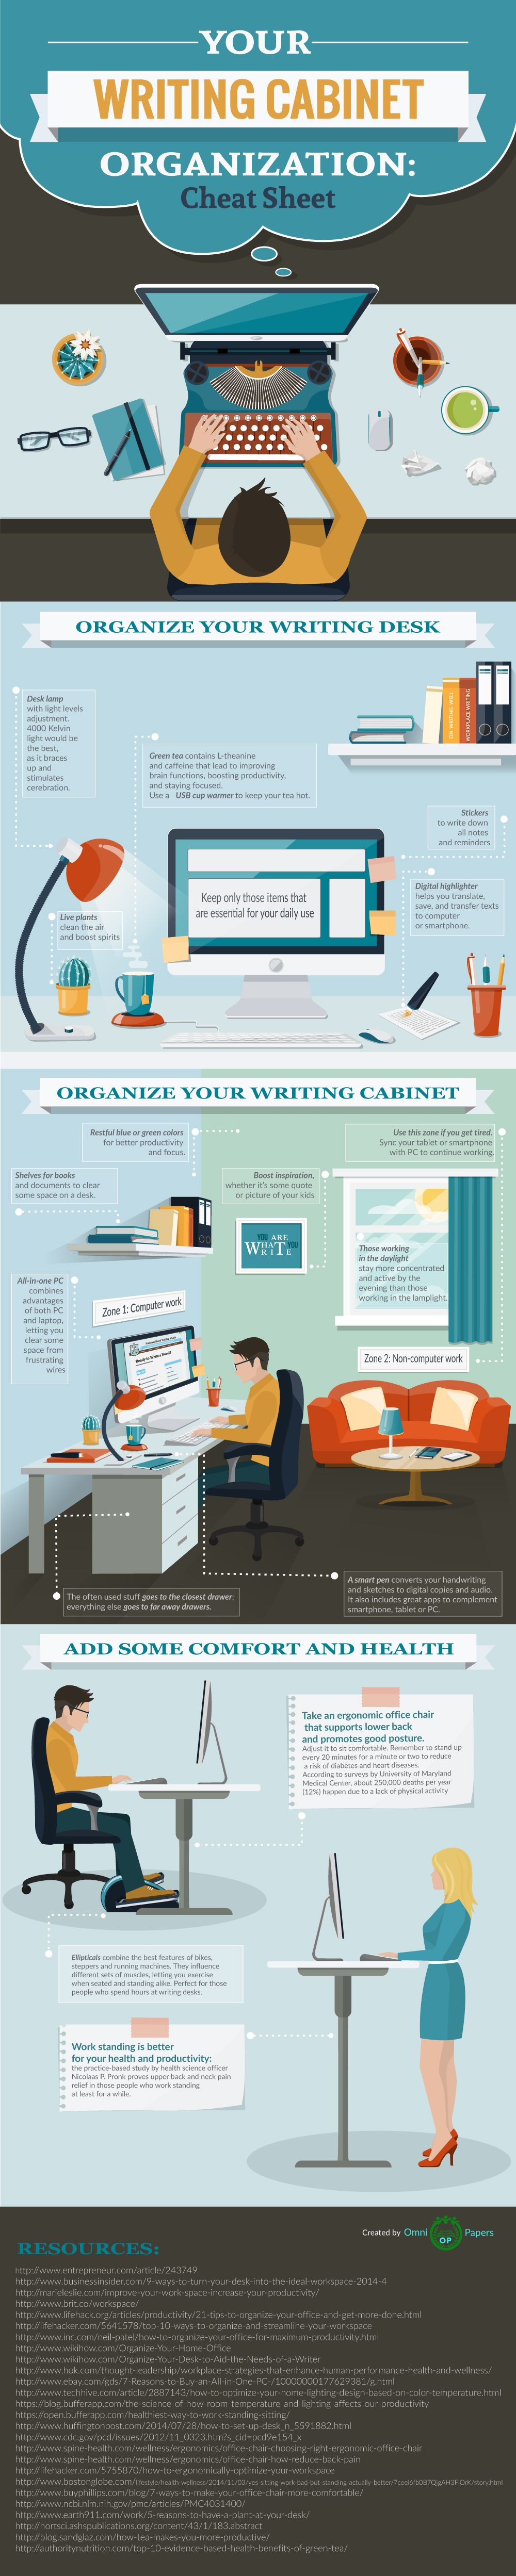 Your Writing Cabinet Organization: Cheat Sheet